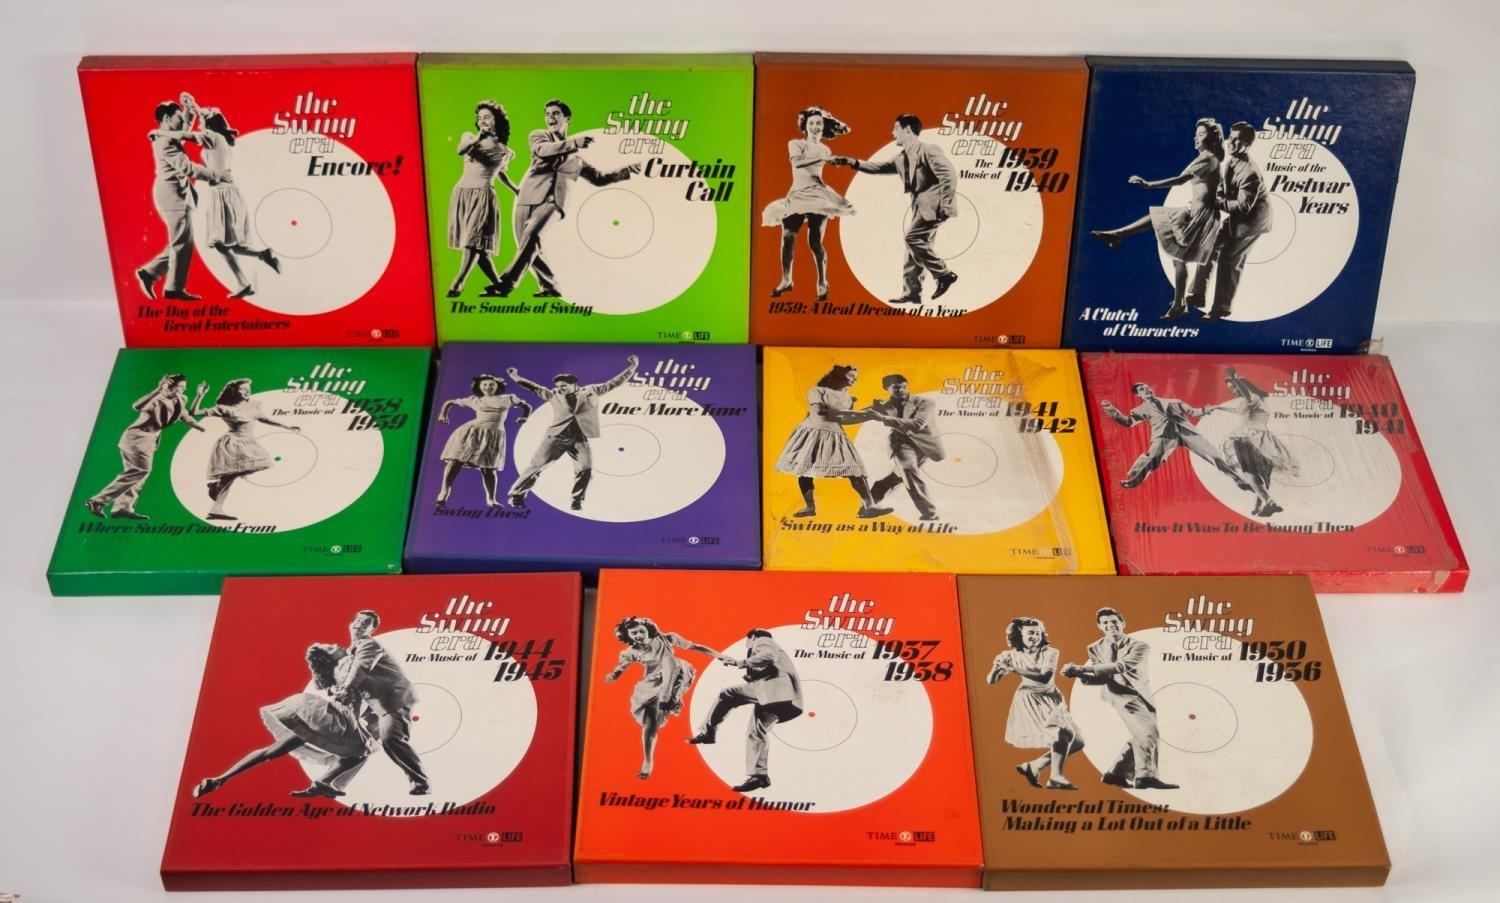 JAZZ, VINYL RECORDS- C IS COMPILATION- Various boxed sets from the SWING ERA series released by Time